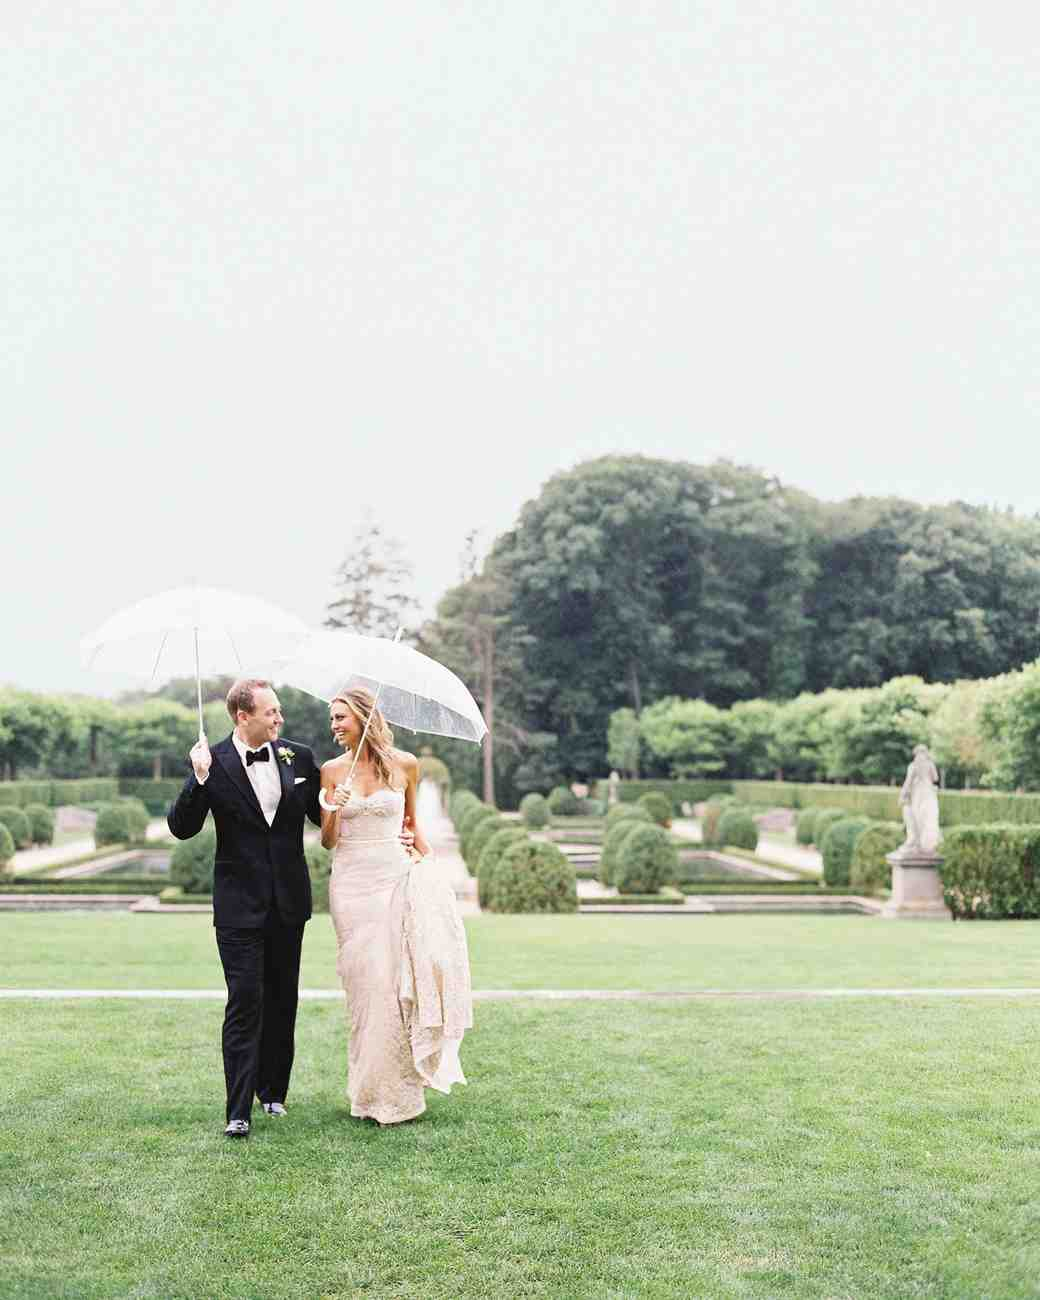 newlywed couple walking in rain